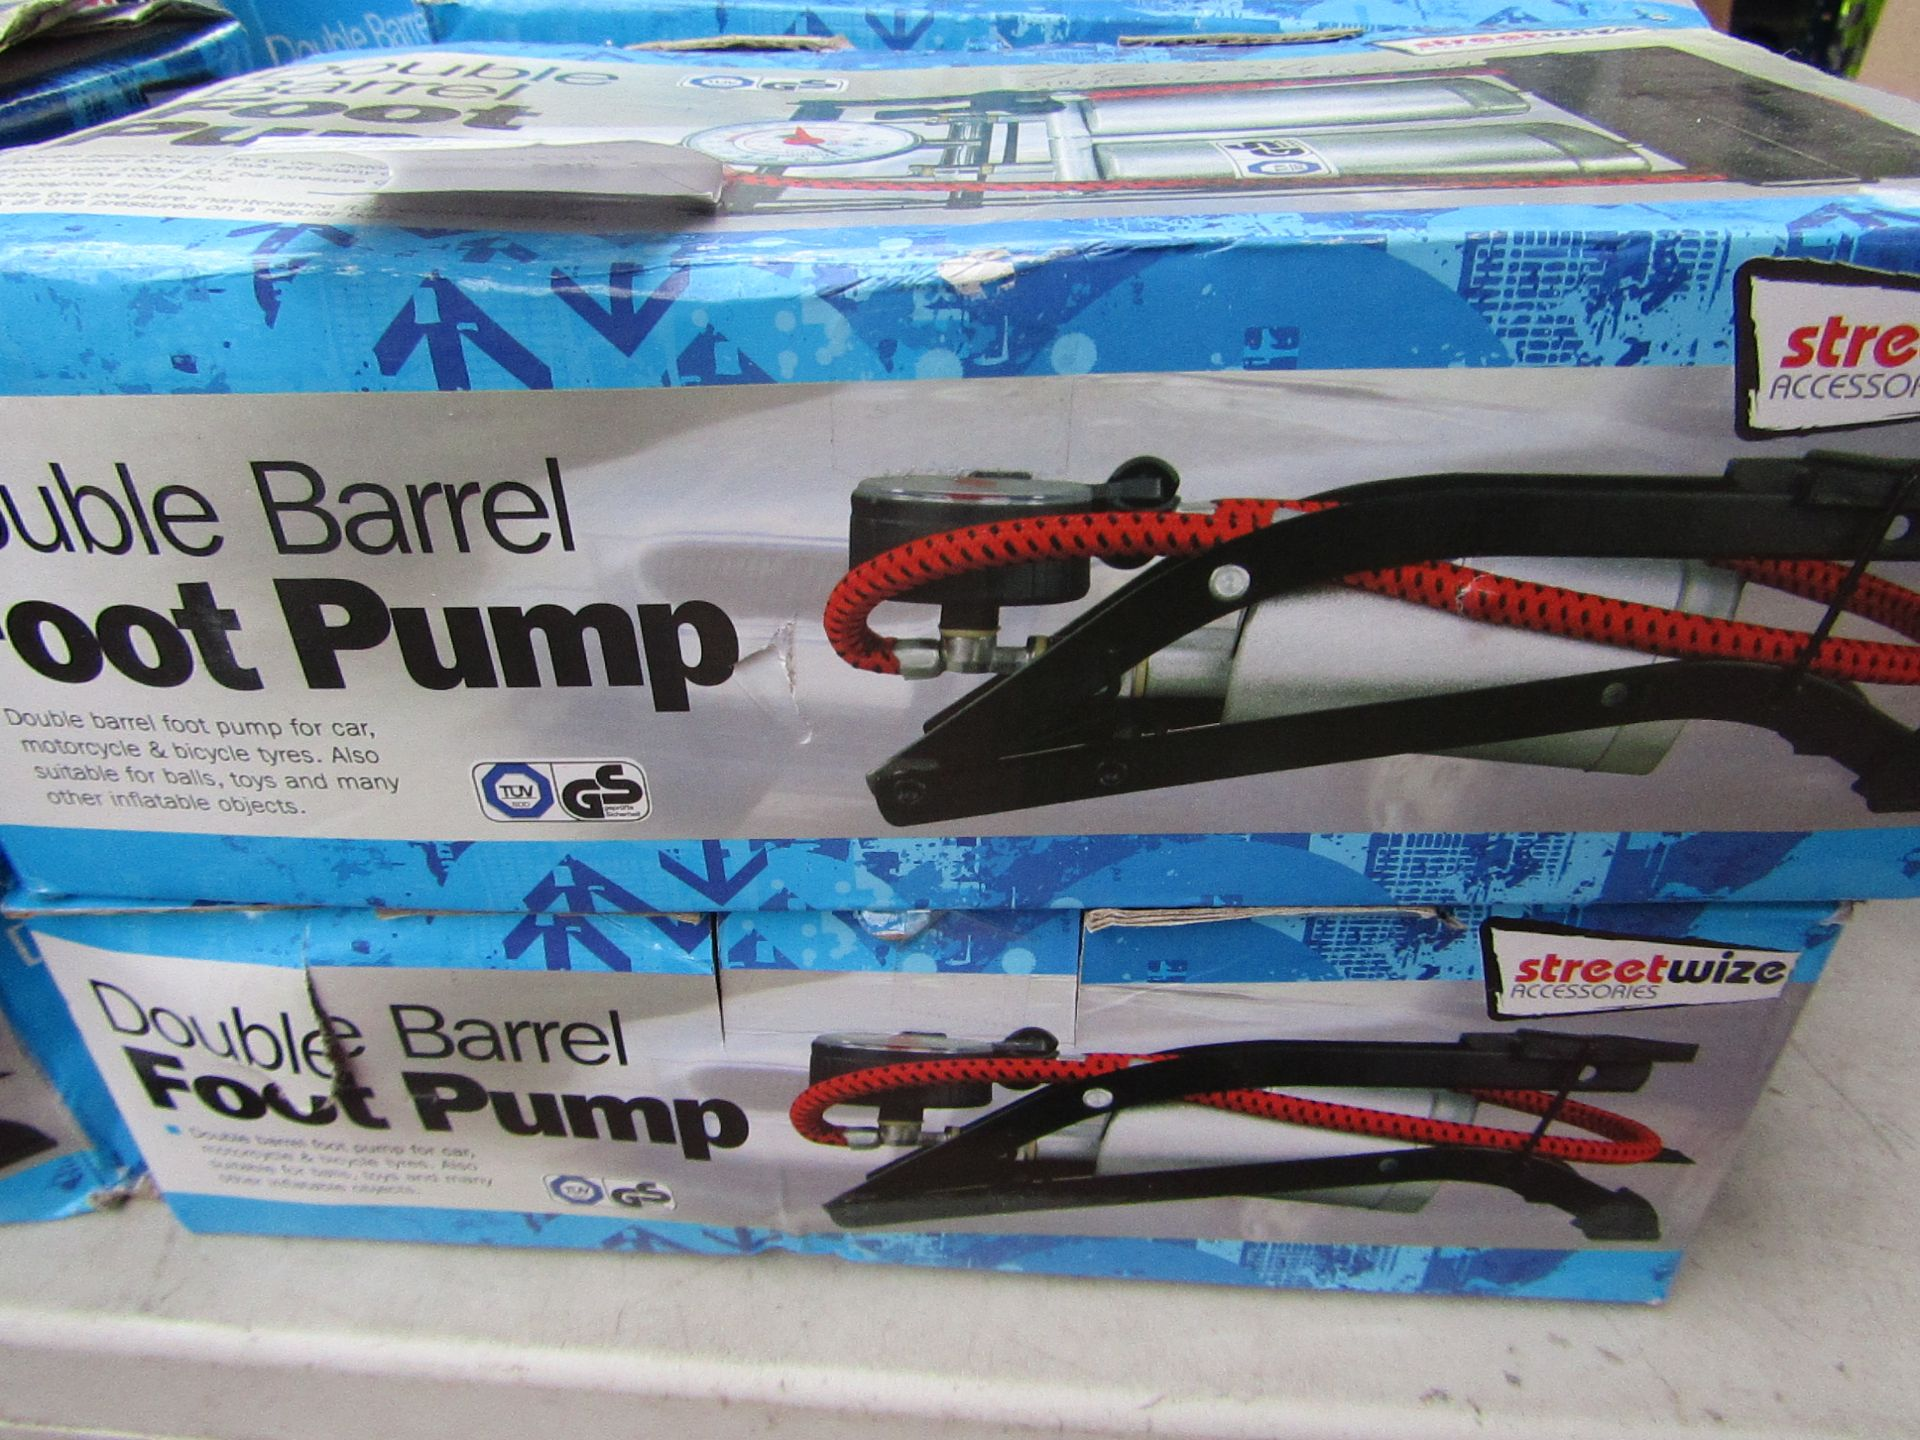 Lot 347 - 2x Double barrelled foot pumps, boxed and unchecked